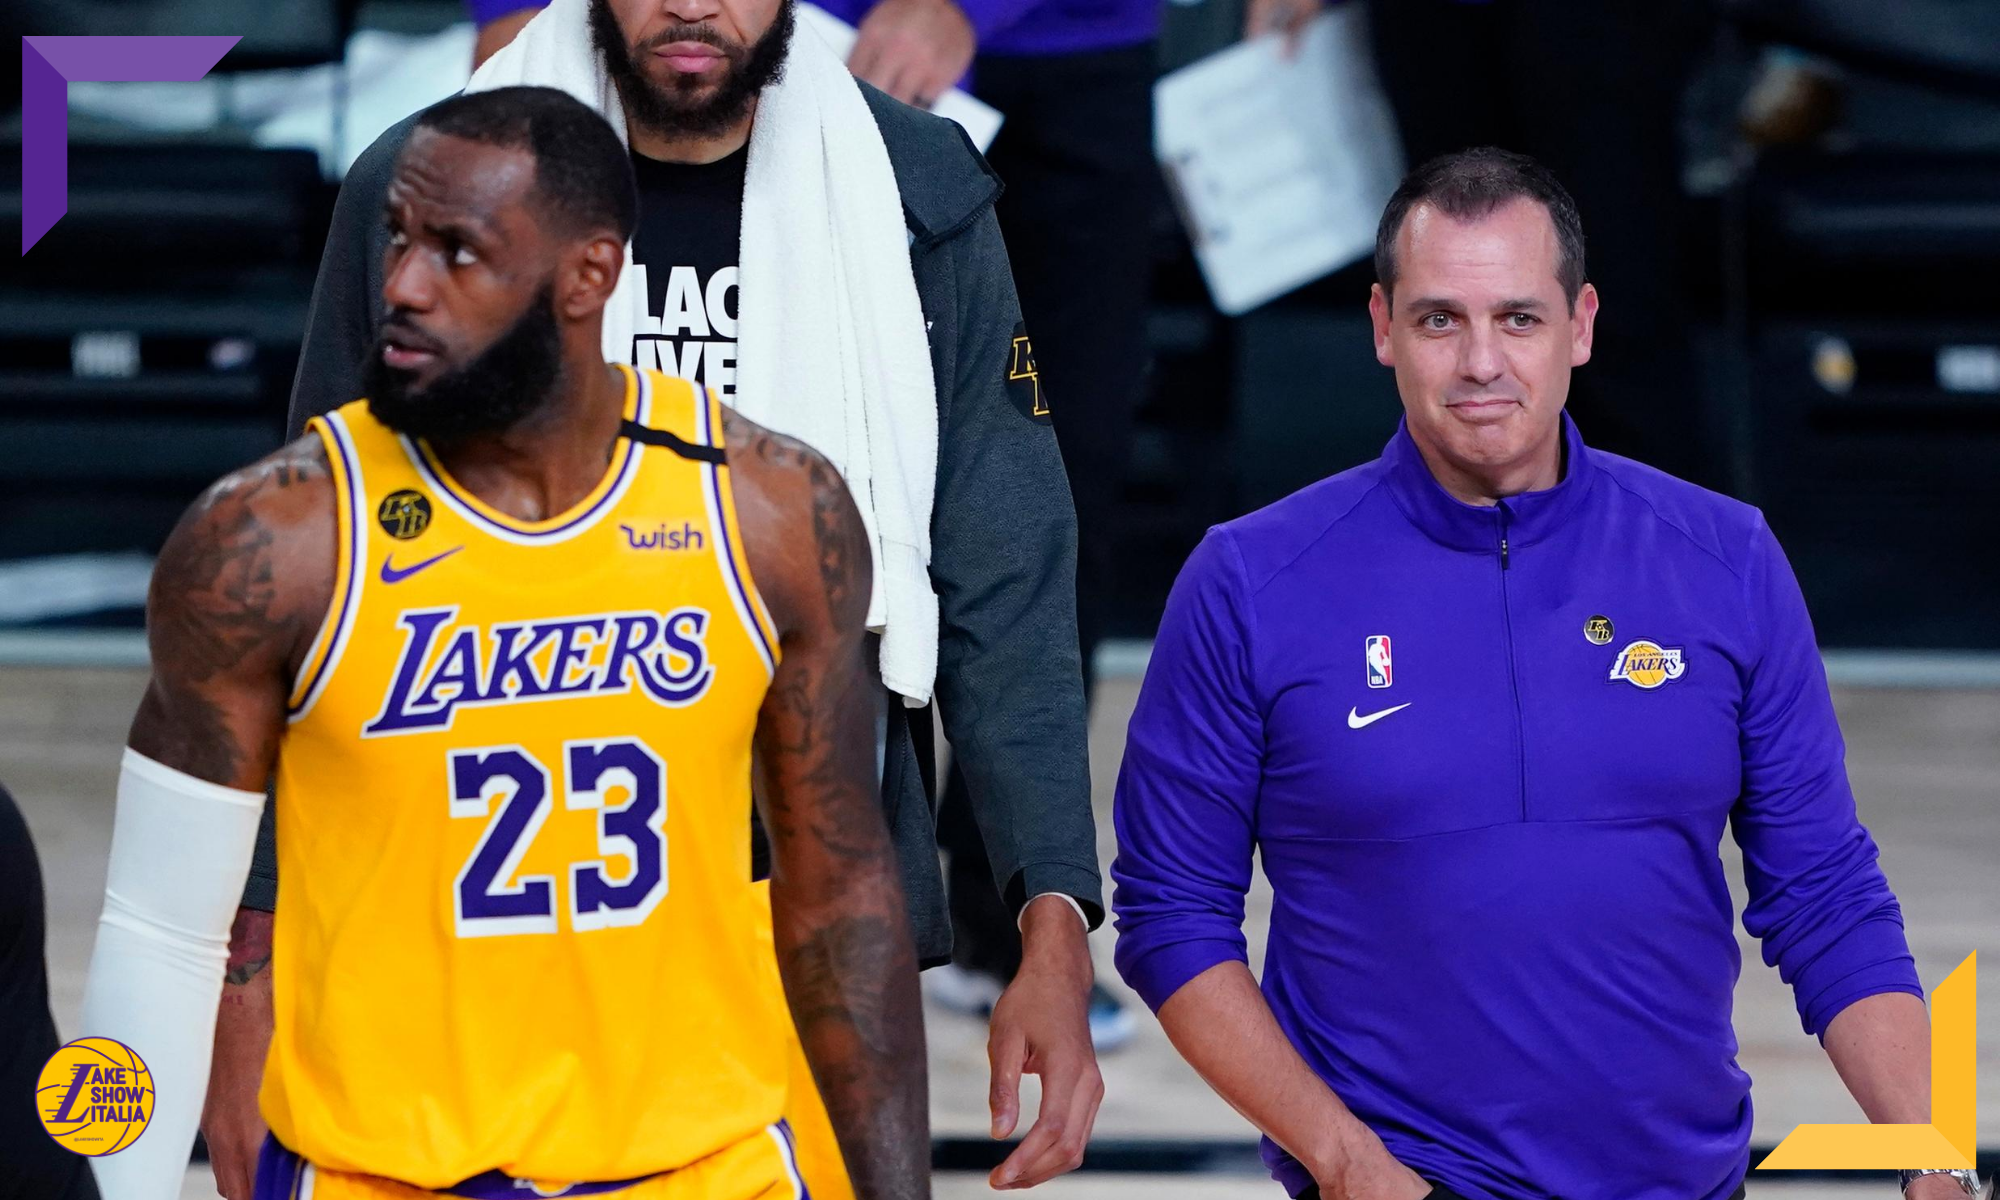 Los Angeles Lakers head coach Frank Vogel and forward LeBron James walk on the court during a timeout due to a goal being knocked out of position during the first half of an NBA basketball game against the Portland Trail Blazers Tuesday, Aug. 18, 2020, in Lake Buena Vista, Fla.